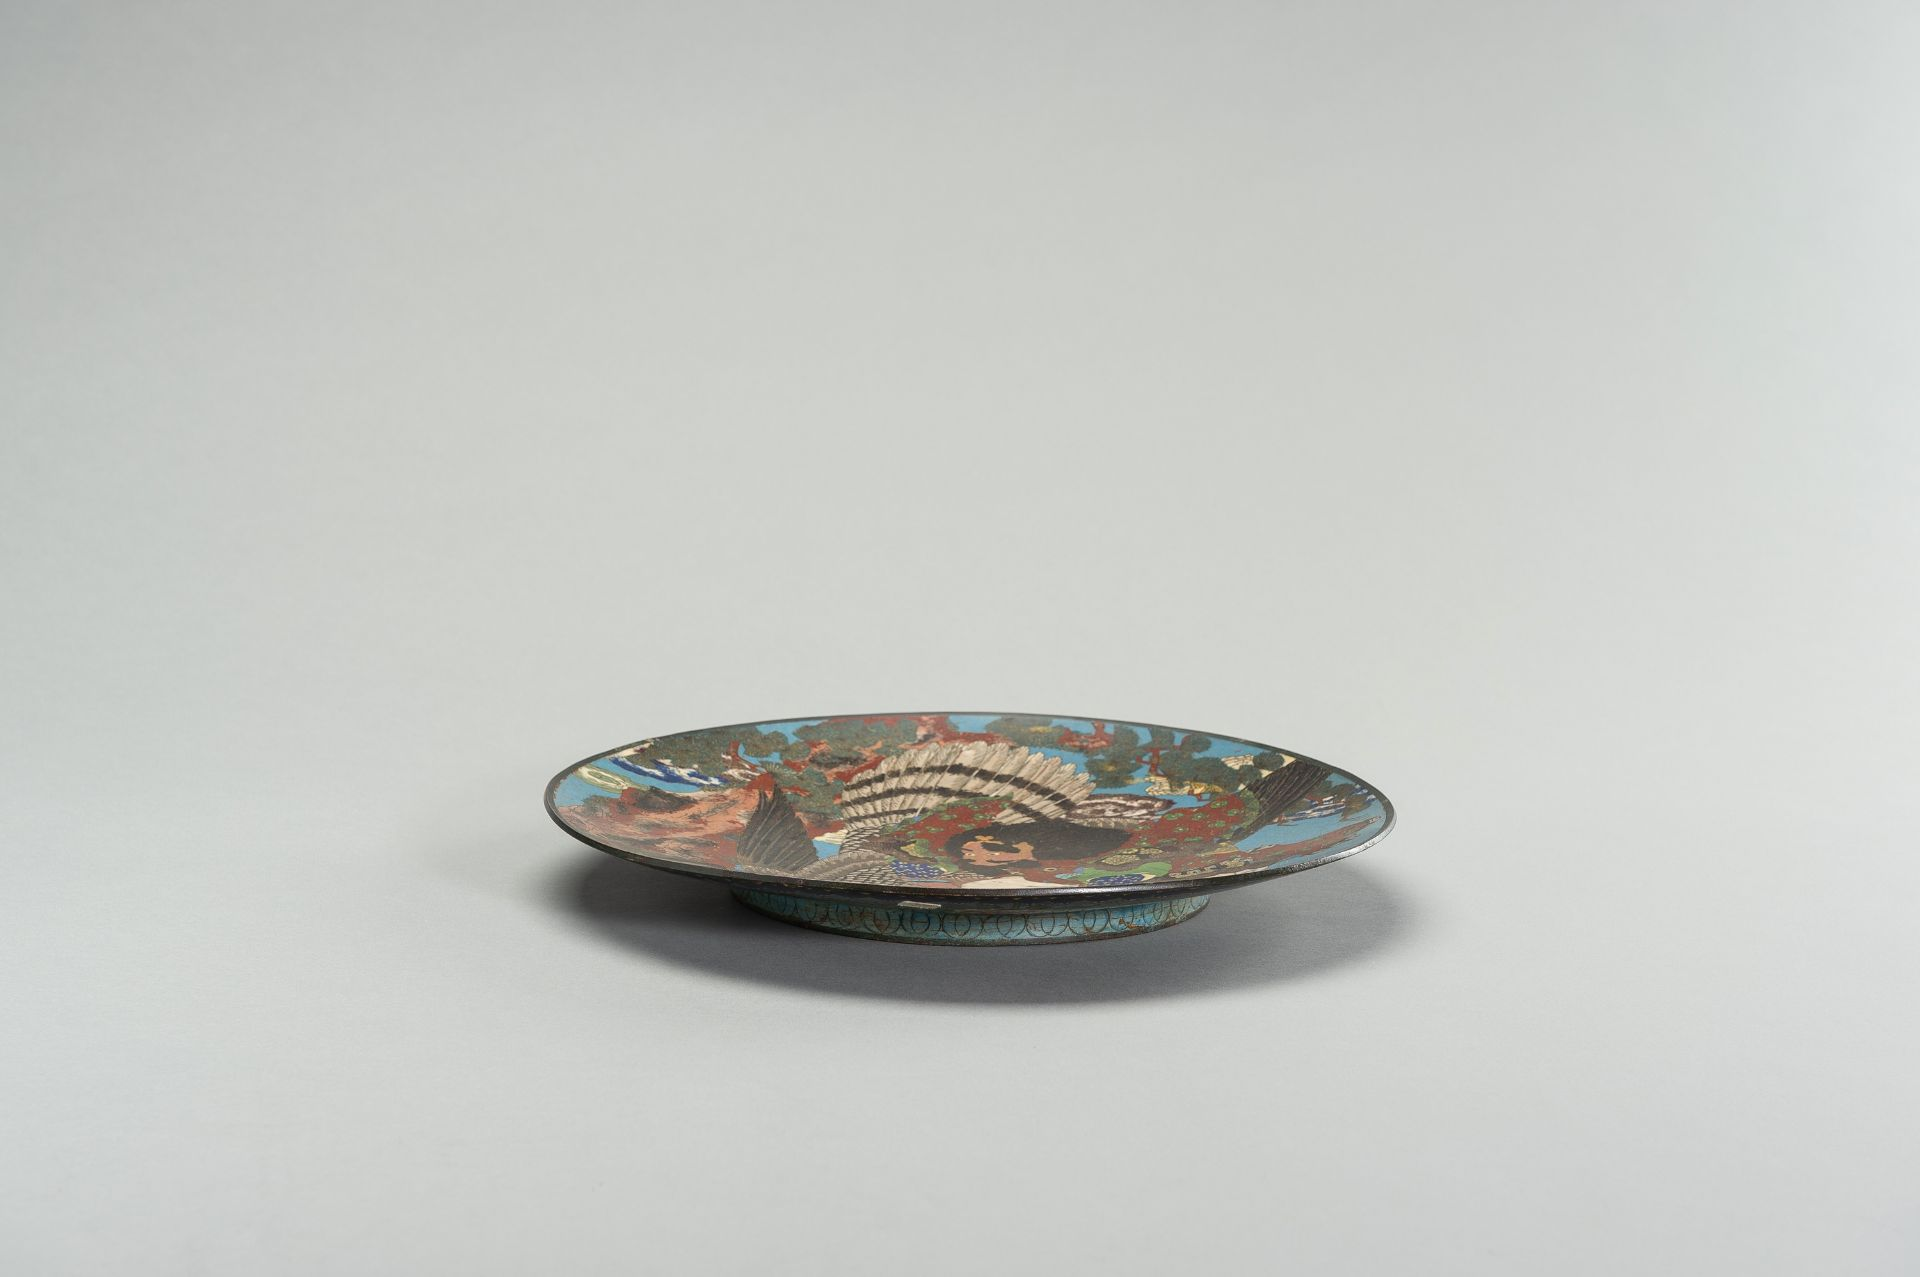 A LARGE CLOISONNE ENAMEL PLATE WITH FIGURAL DECOR - Image 5 of 7